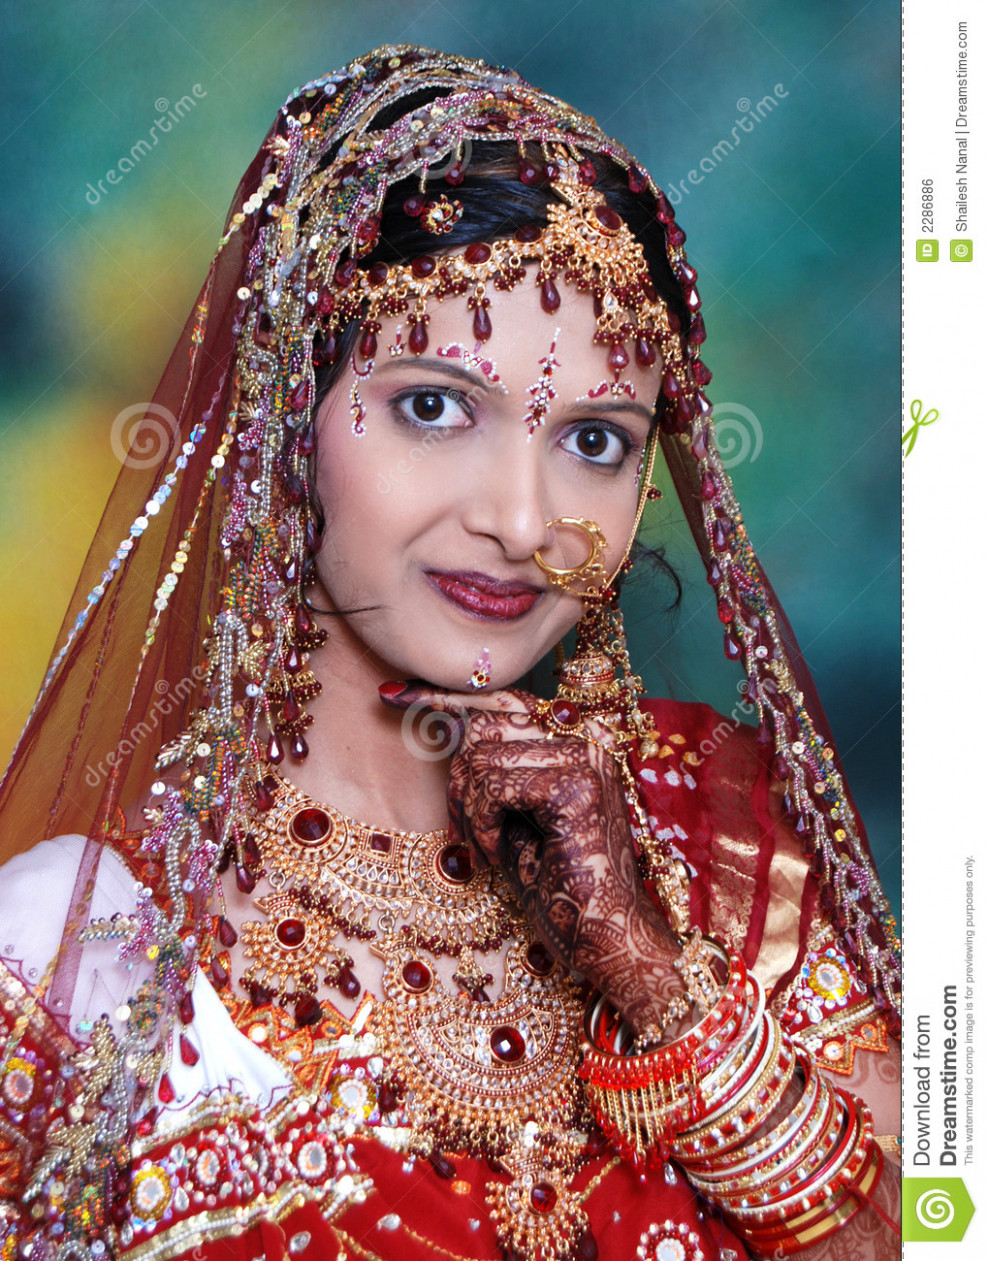 Bright Indian Bride. stock photo. Image of looks, indian ...